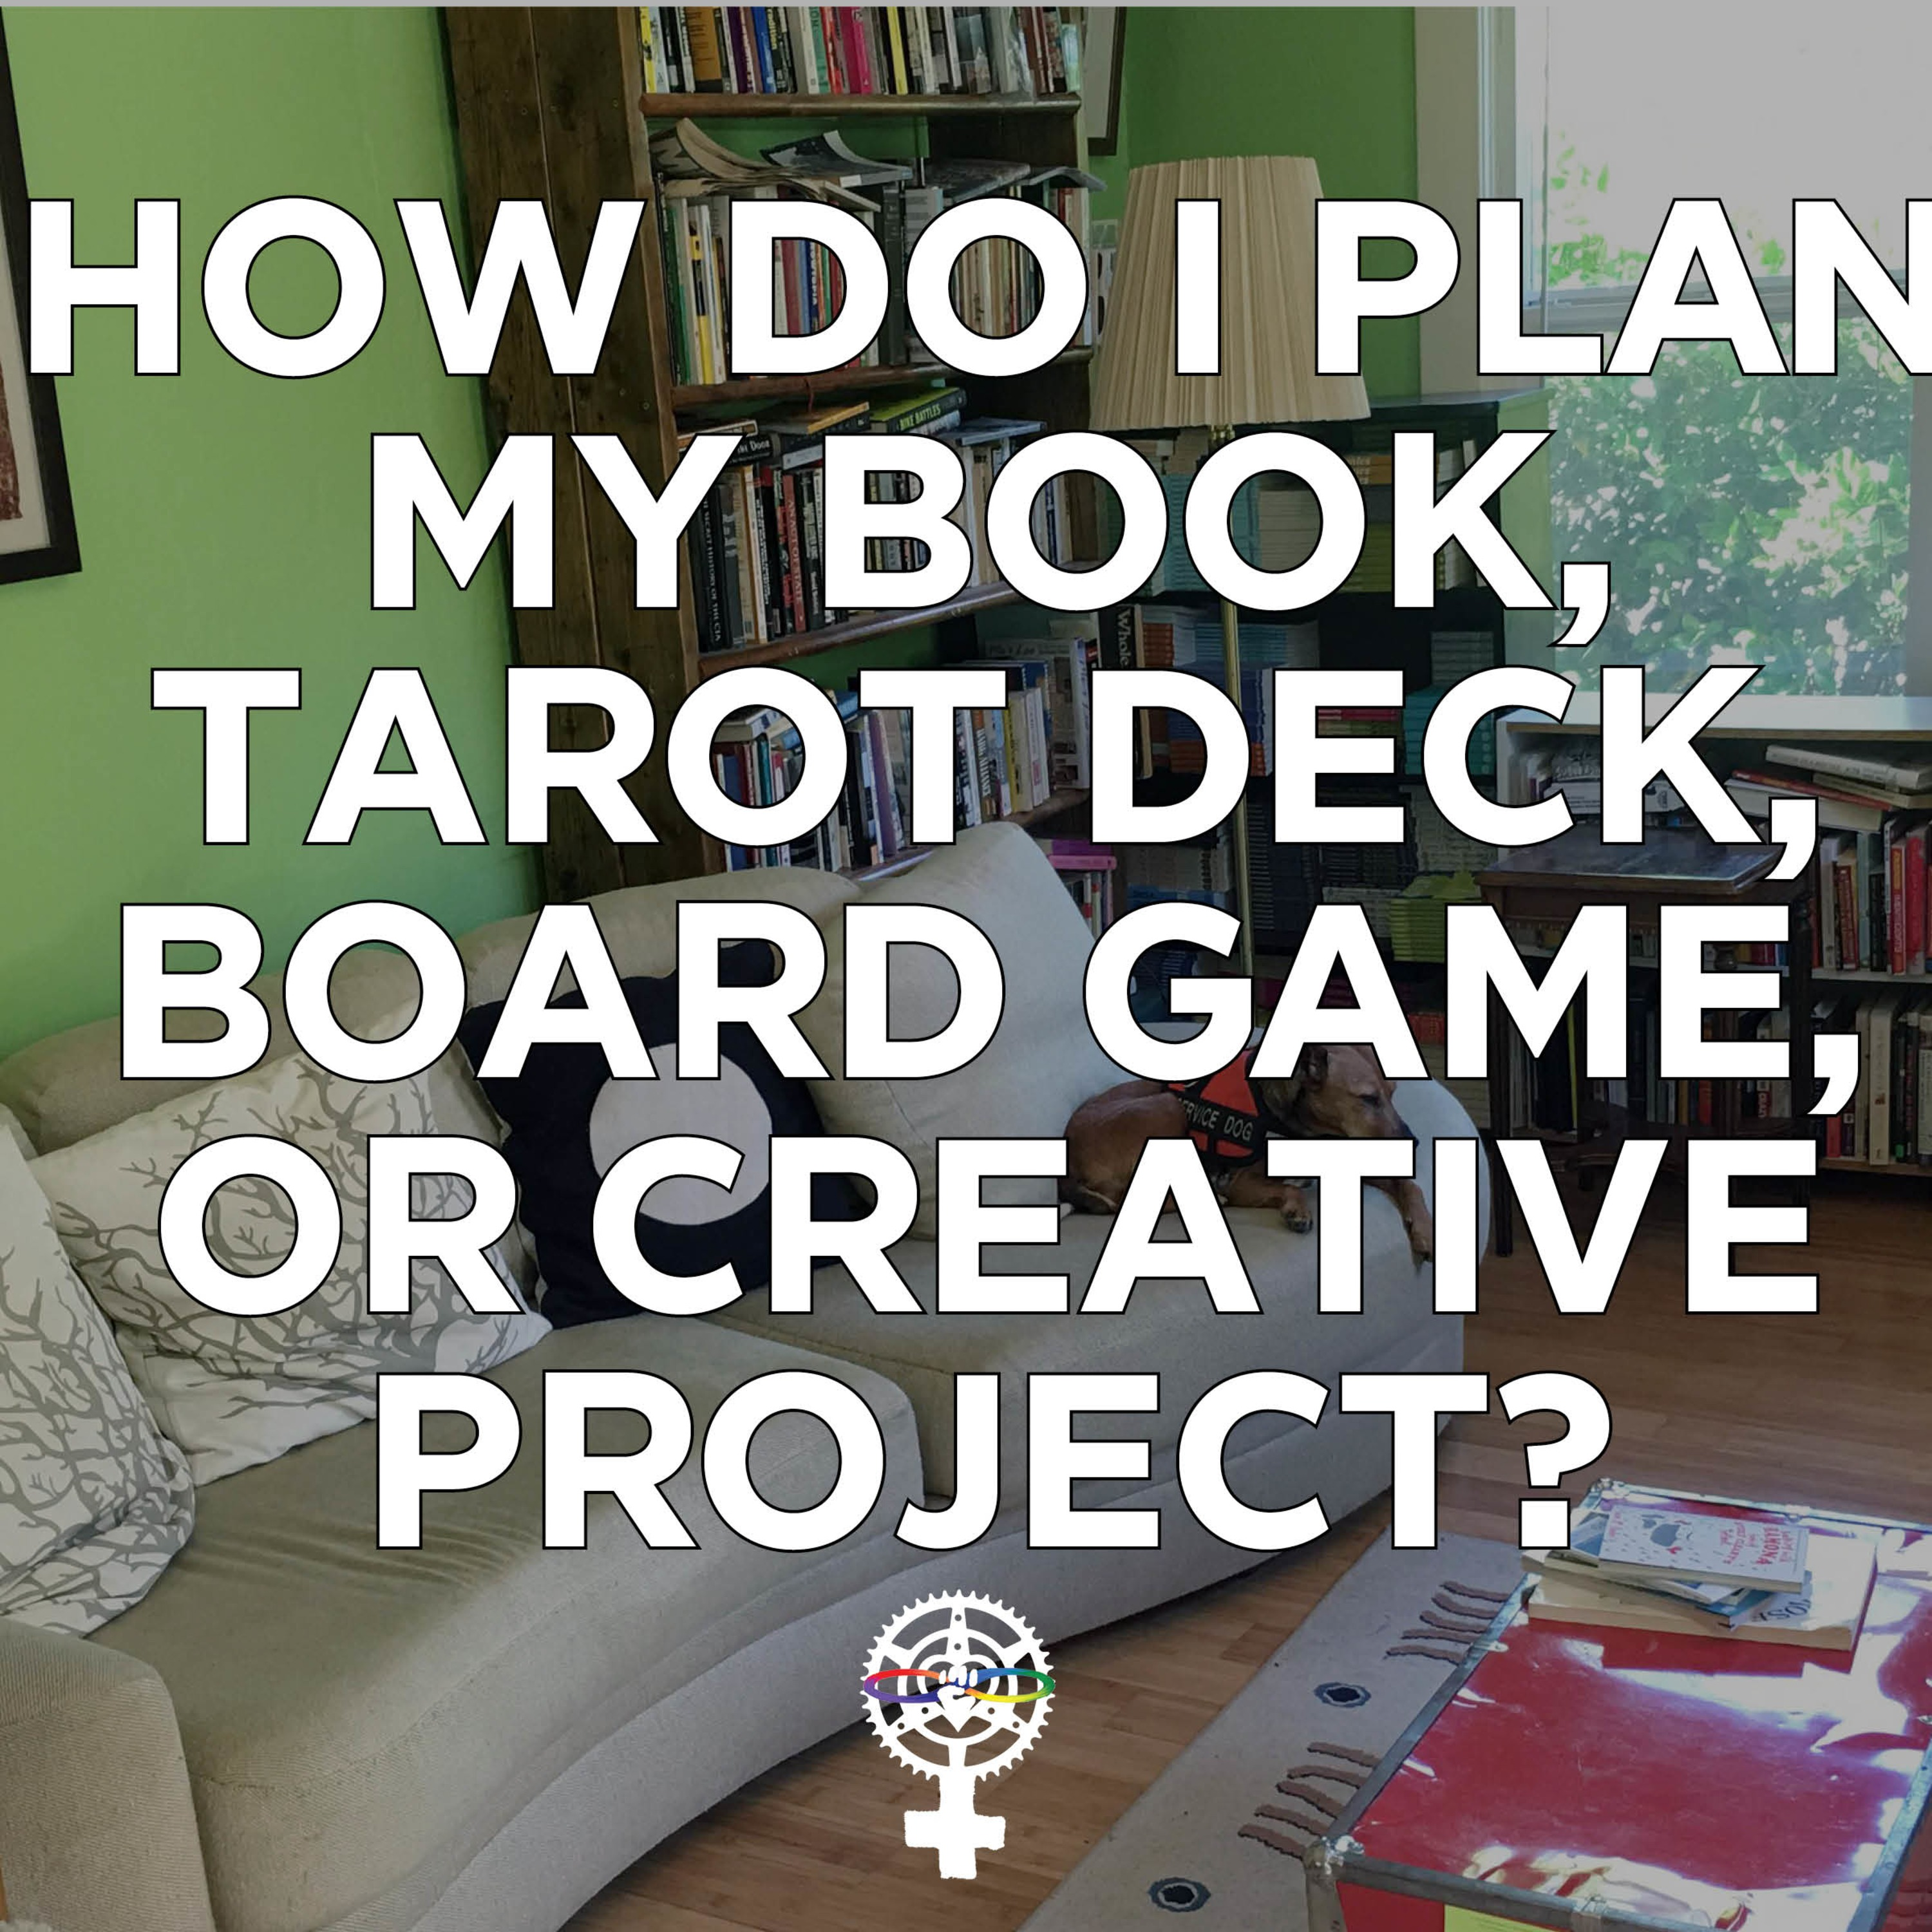 How do I plan my book, tarot deck, board game, or creative project?